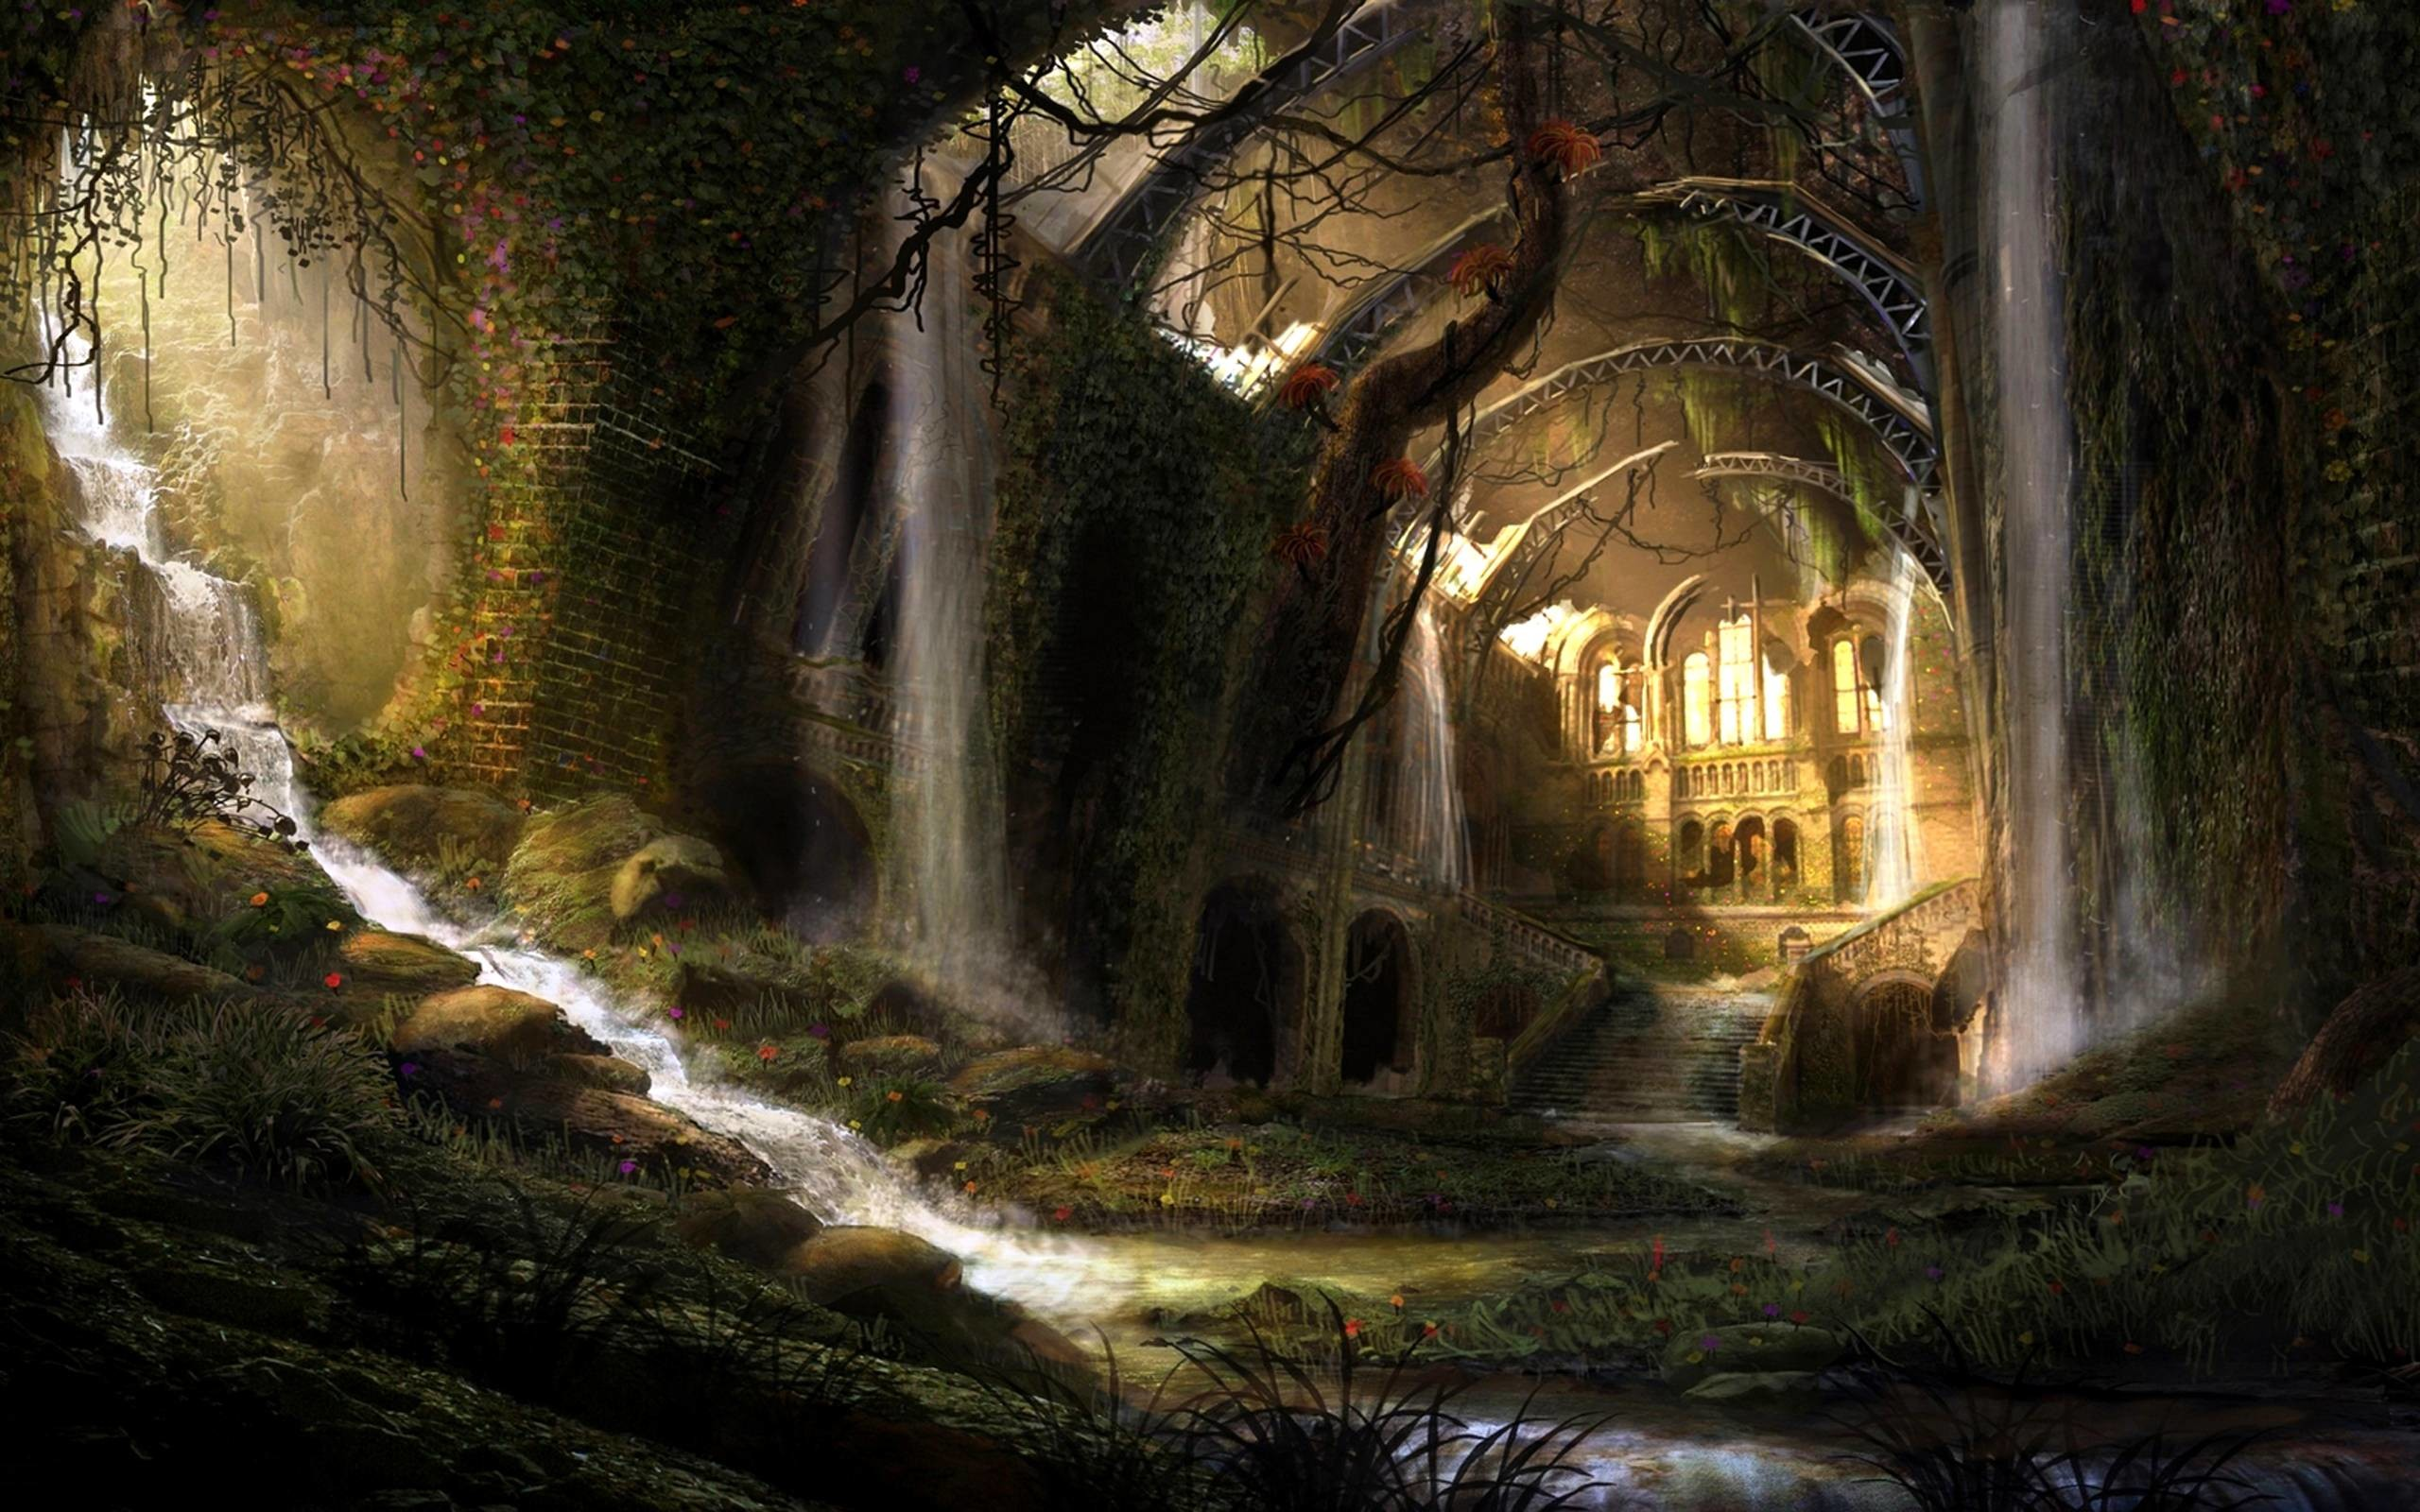 castles ruins castle fantasy artwork abandoned art fantasy HD Wallpapers  for desktop computer, high definition wallpapers for Dual monitors and  standard …